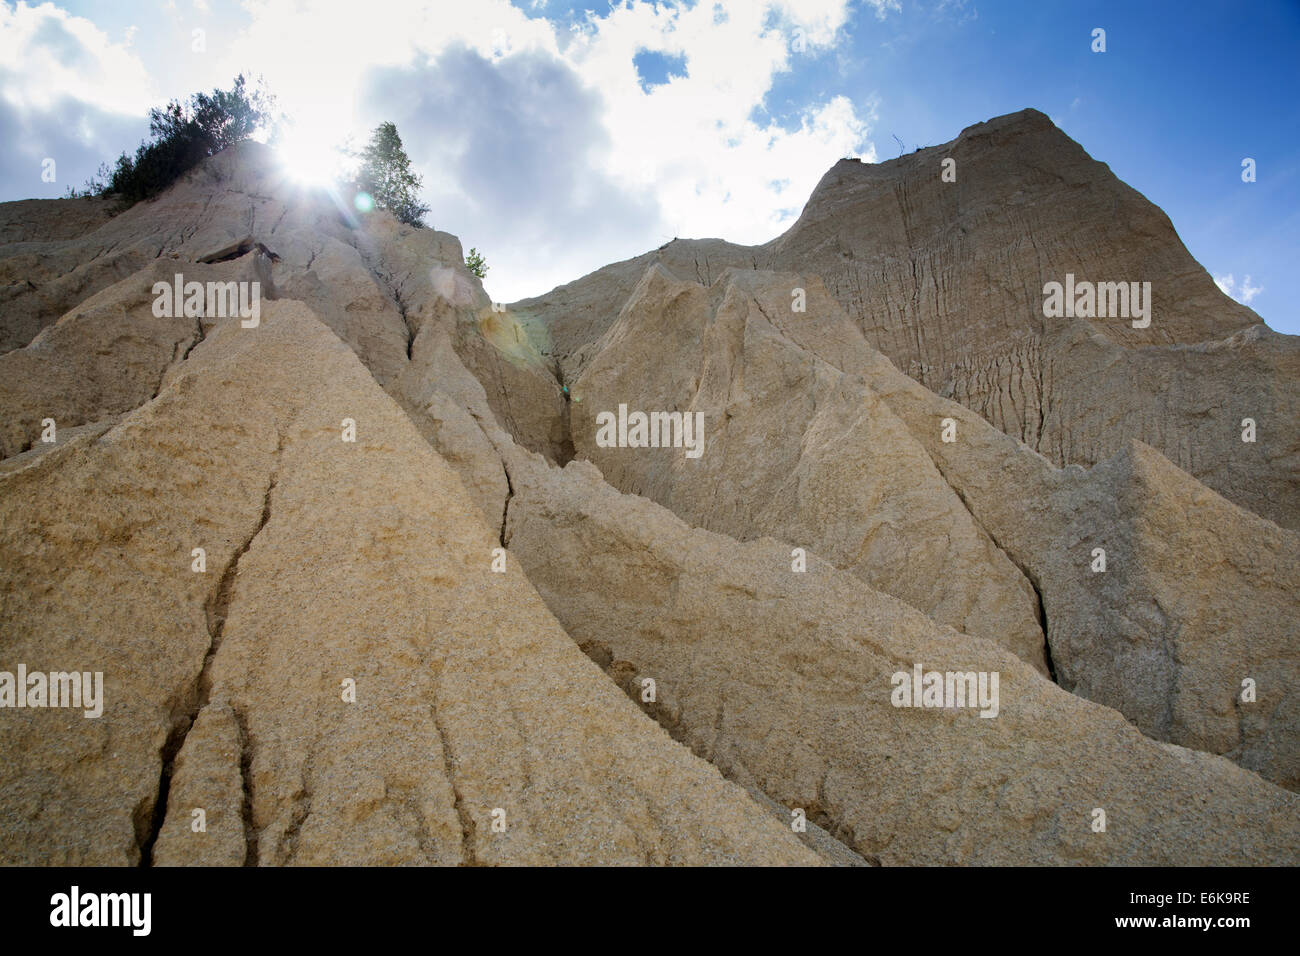 Sand mountains as result of open cast mining - Stock Image